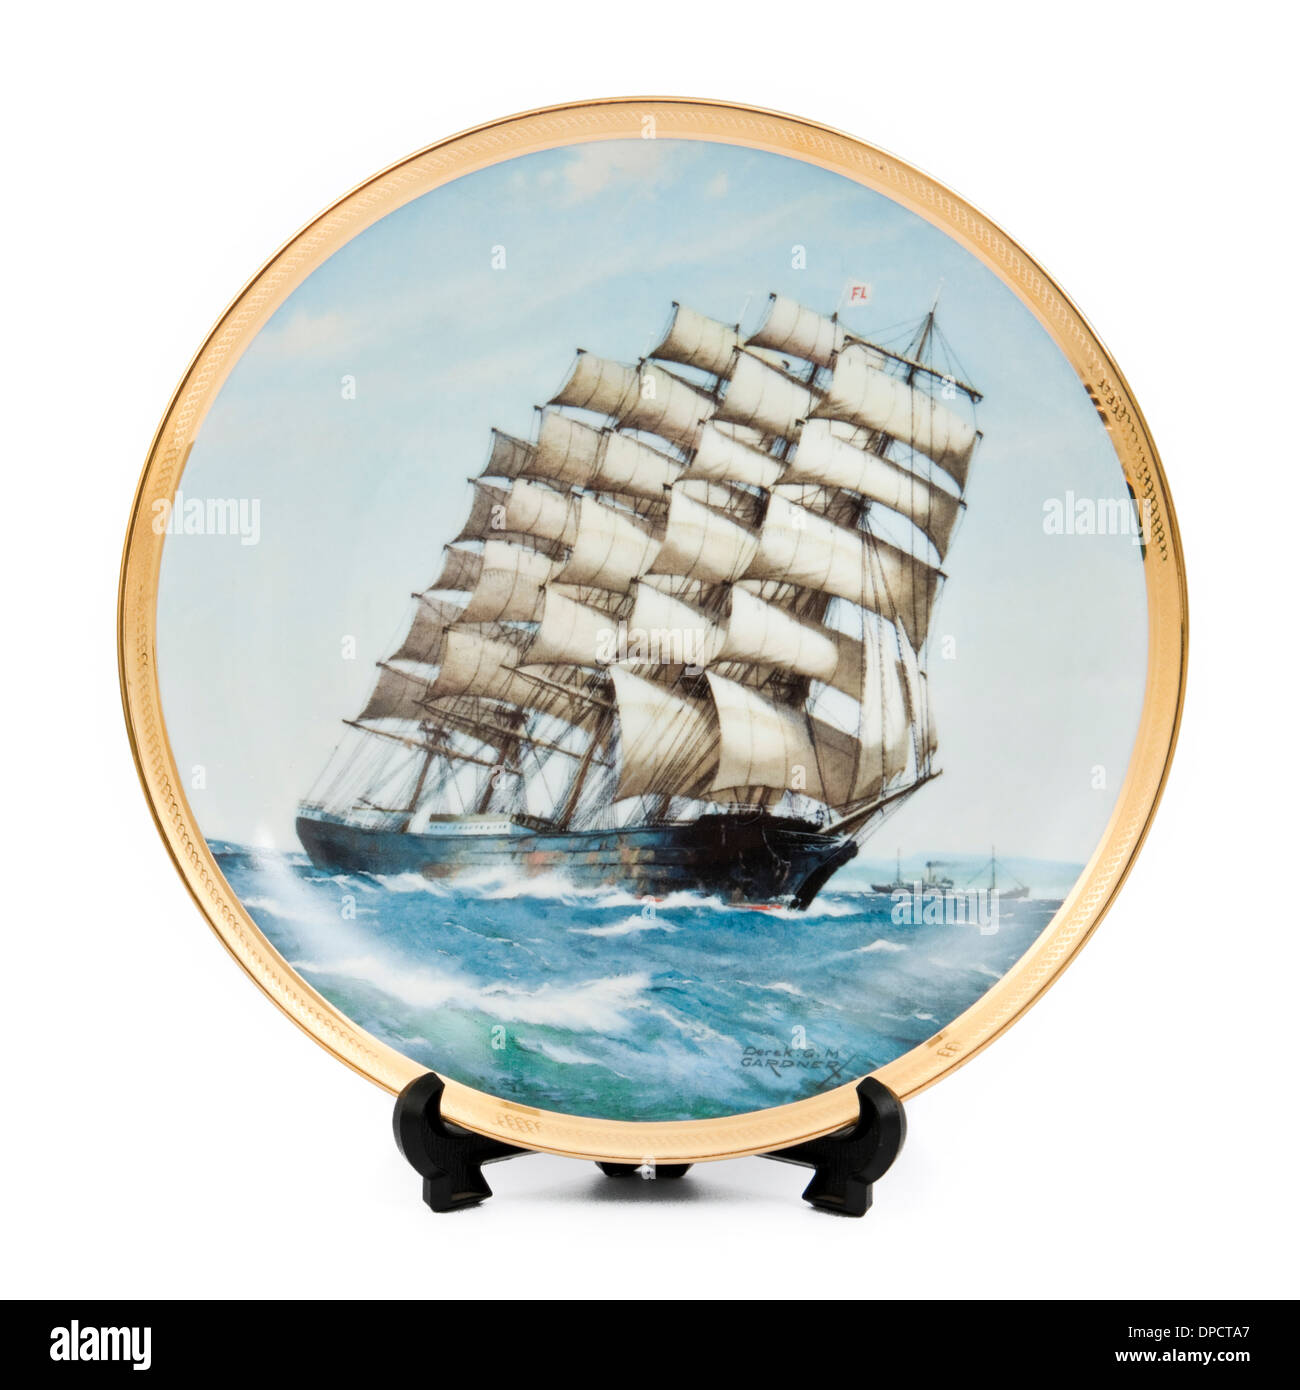 The Preussen, the largest five-masted sailing ship ever built. Porcelain plate by Franklin Mint (1986) - Stock Image